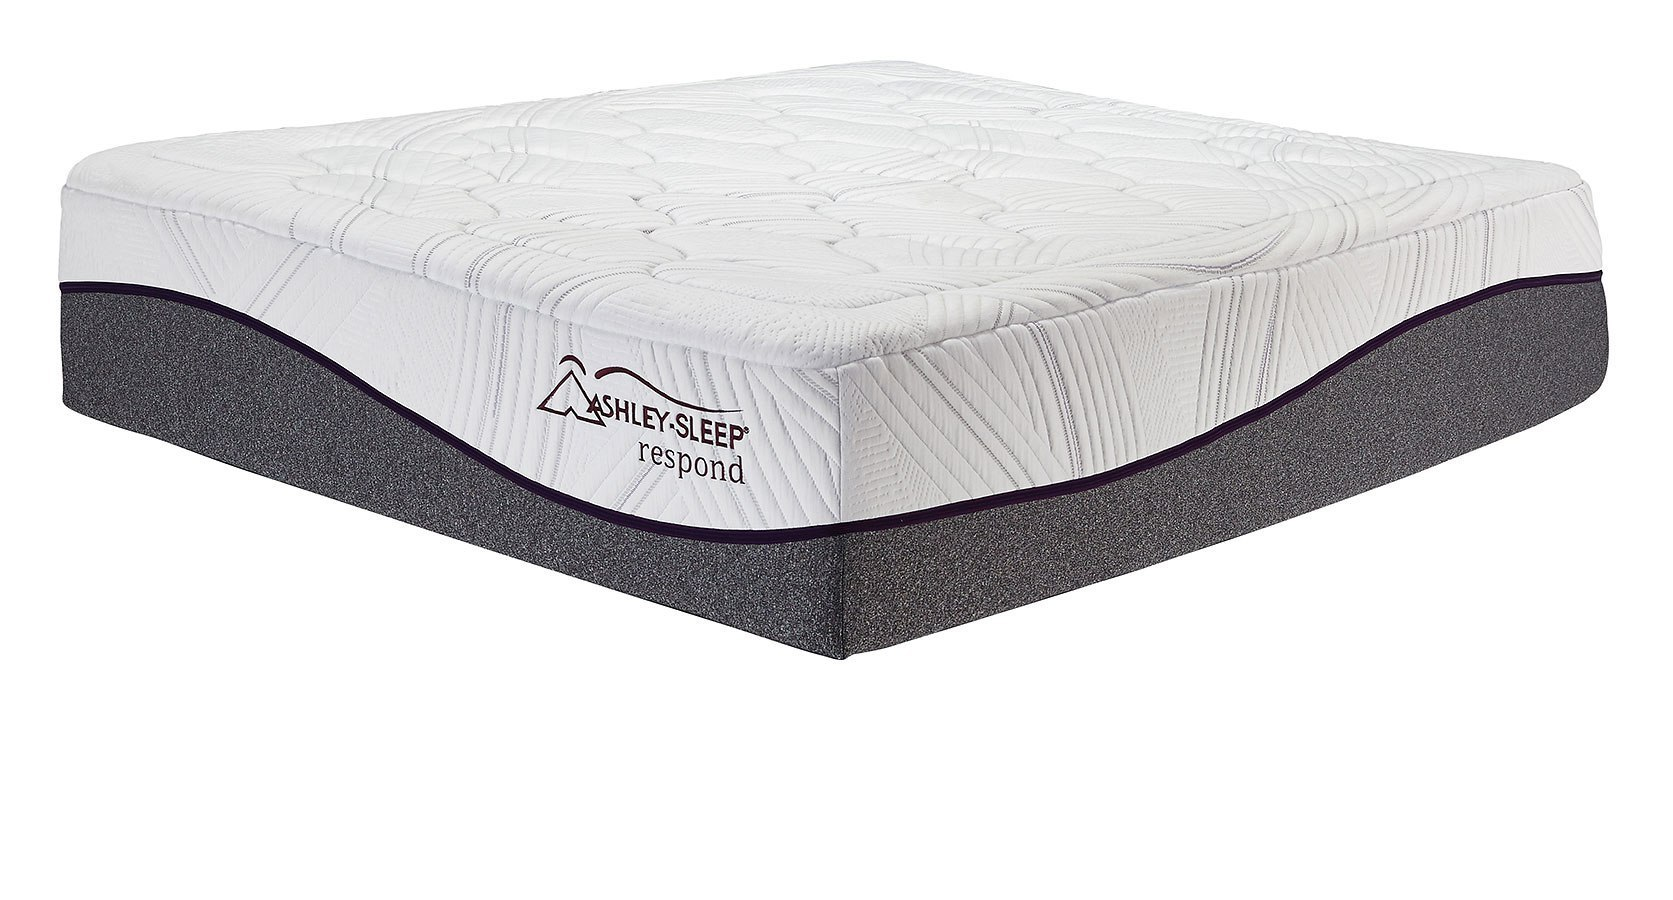 16 Inch Respond Series Memory Foam Mattress Ashley Sleep Furniture Cart